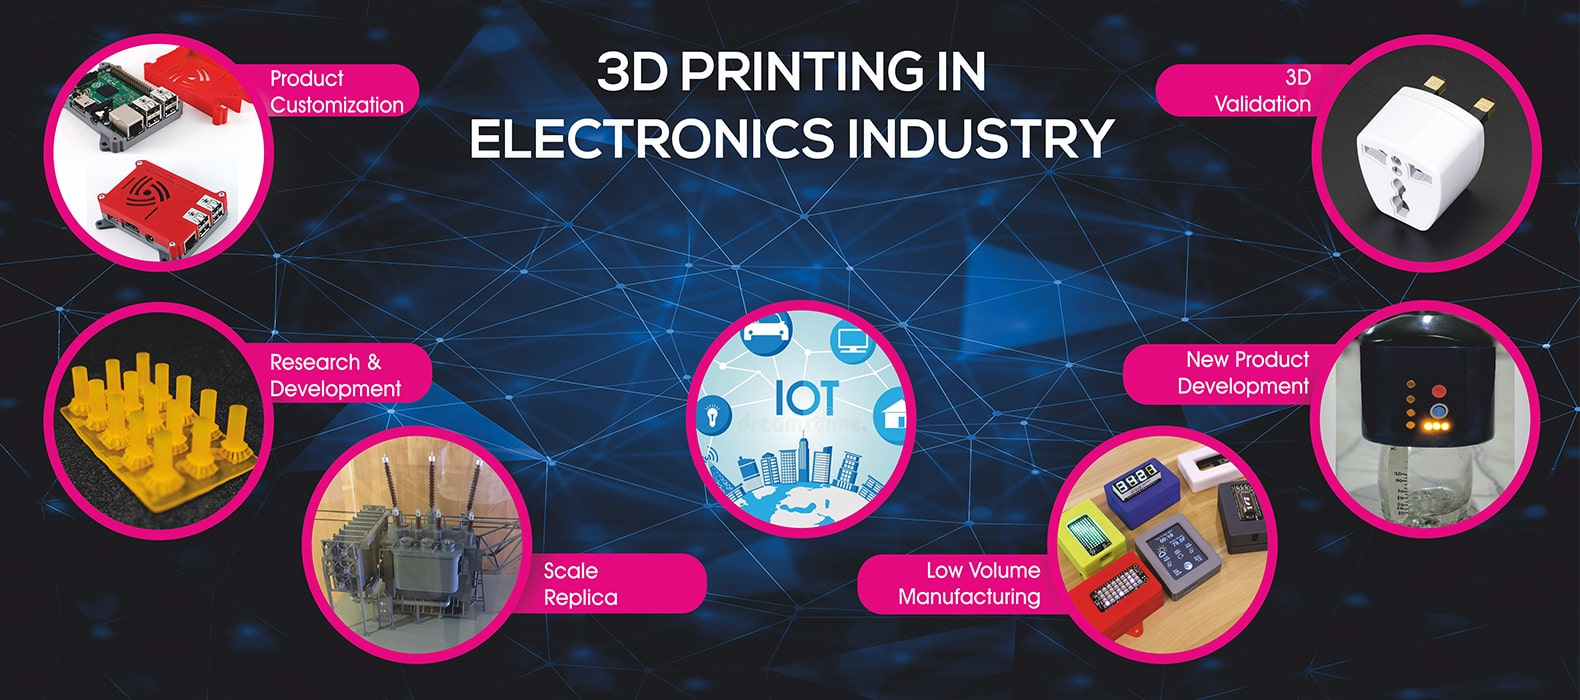 3dprinting-electronics-applications-additive-manufacturing-3dprinting-services